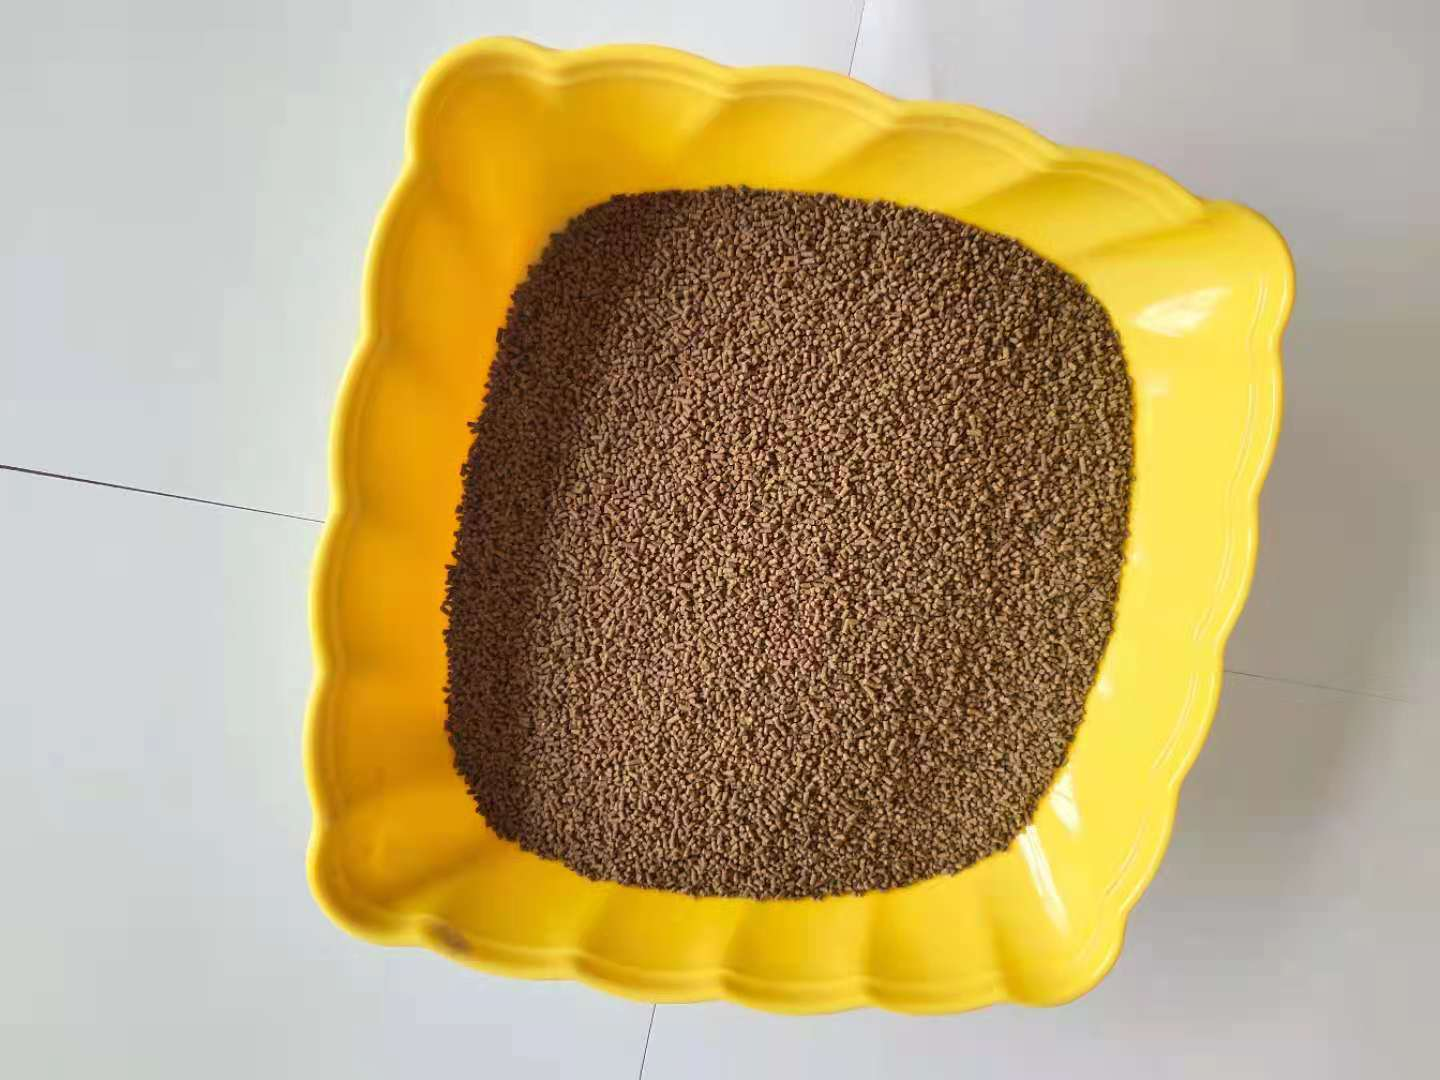 own factory production complete nutrition wholesale turbot feed with low price